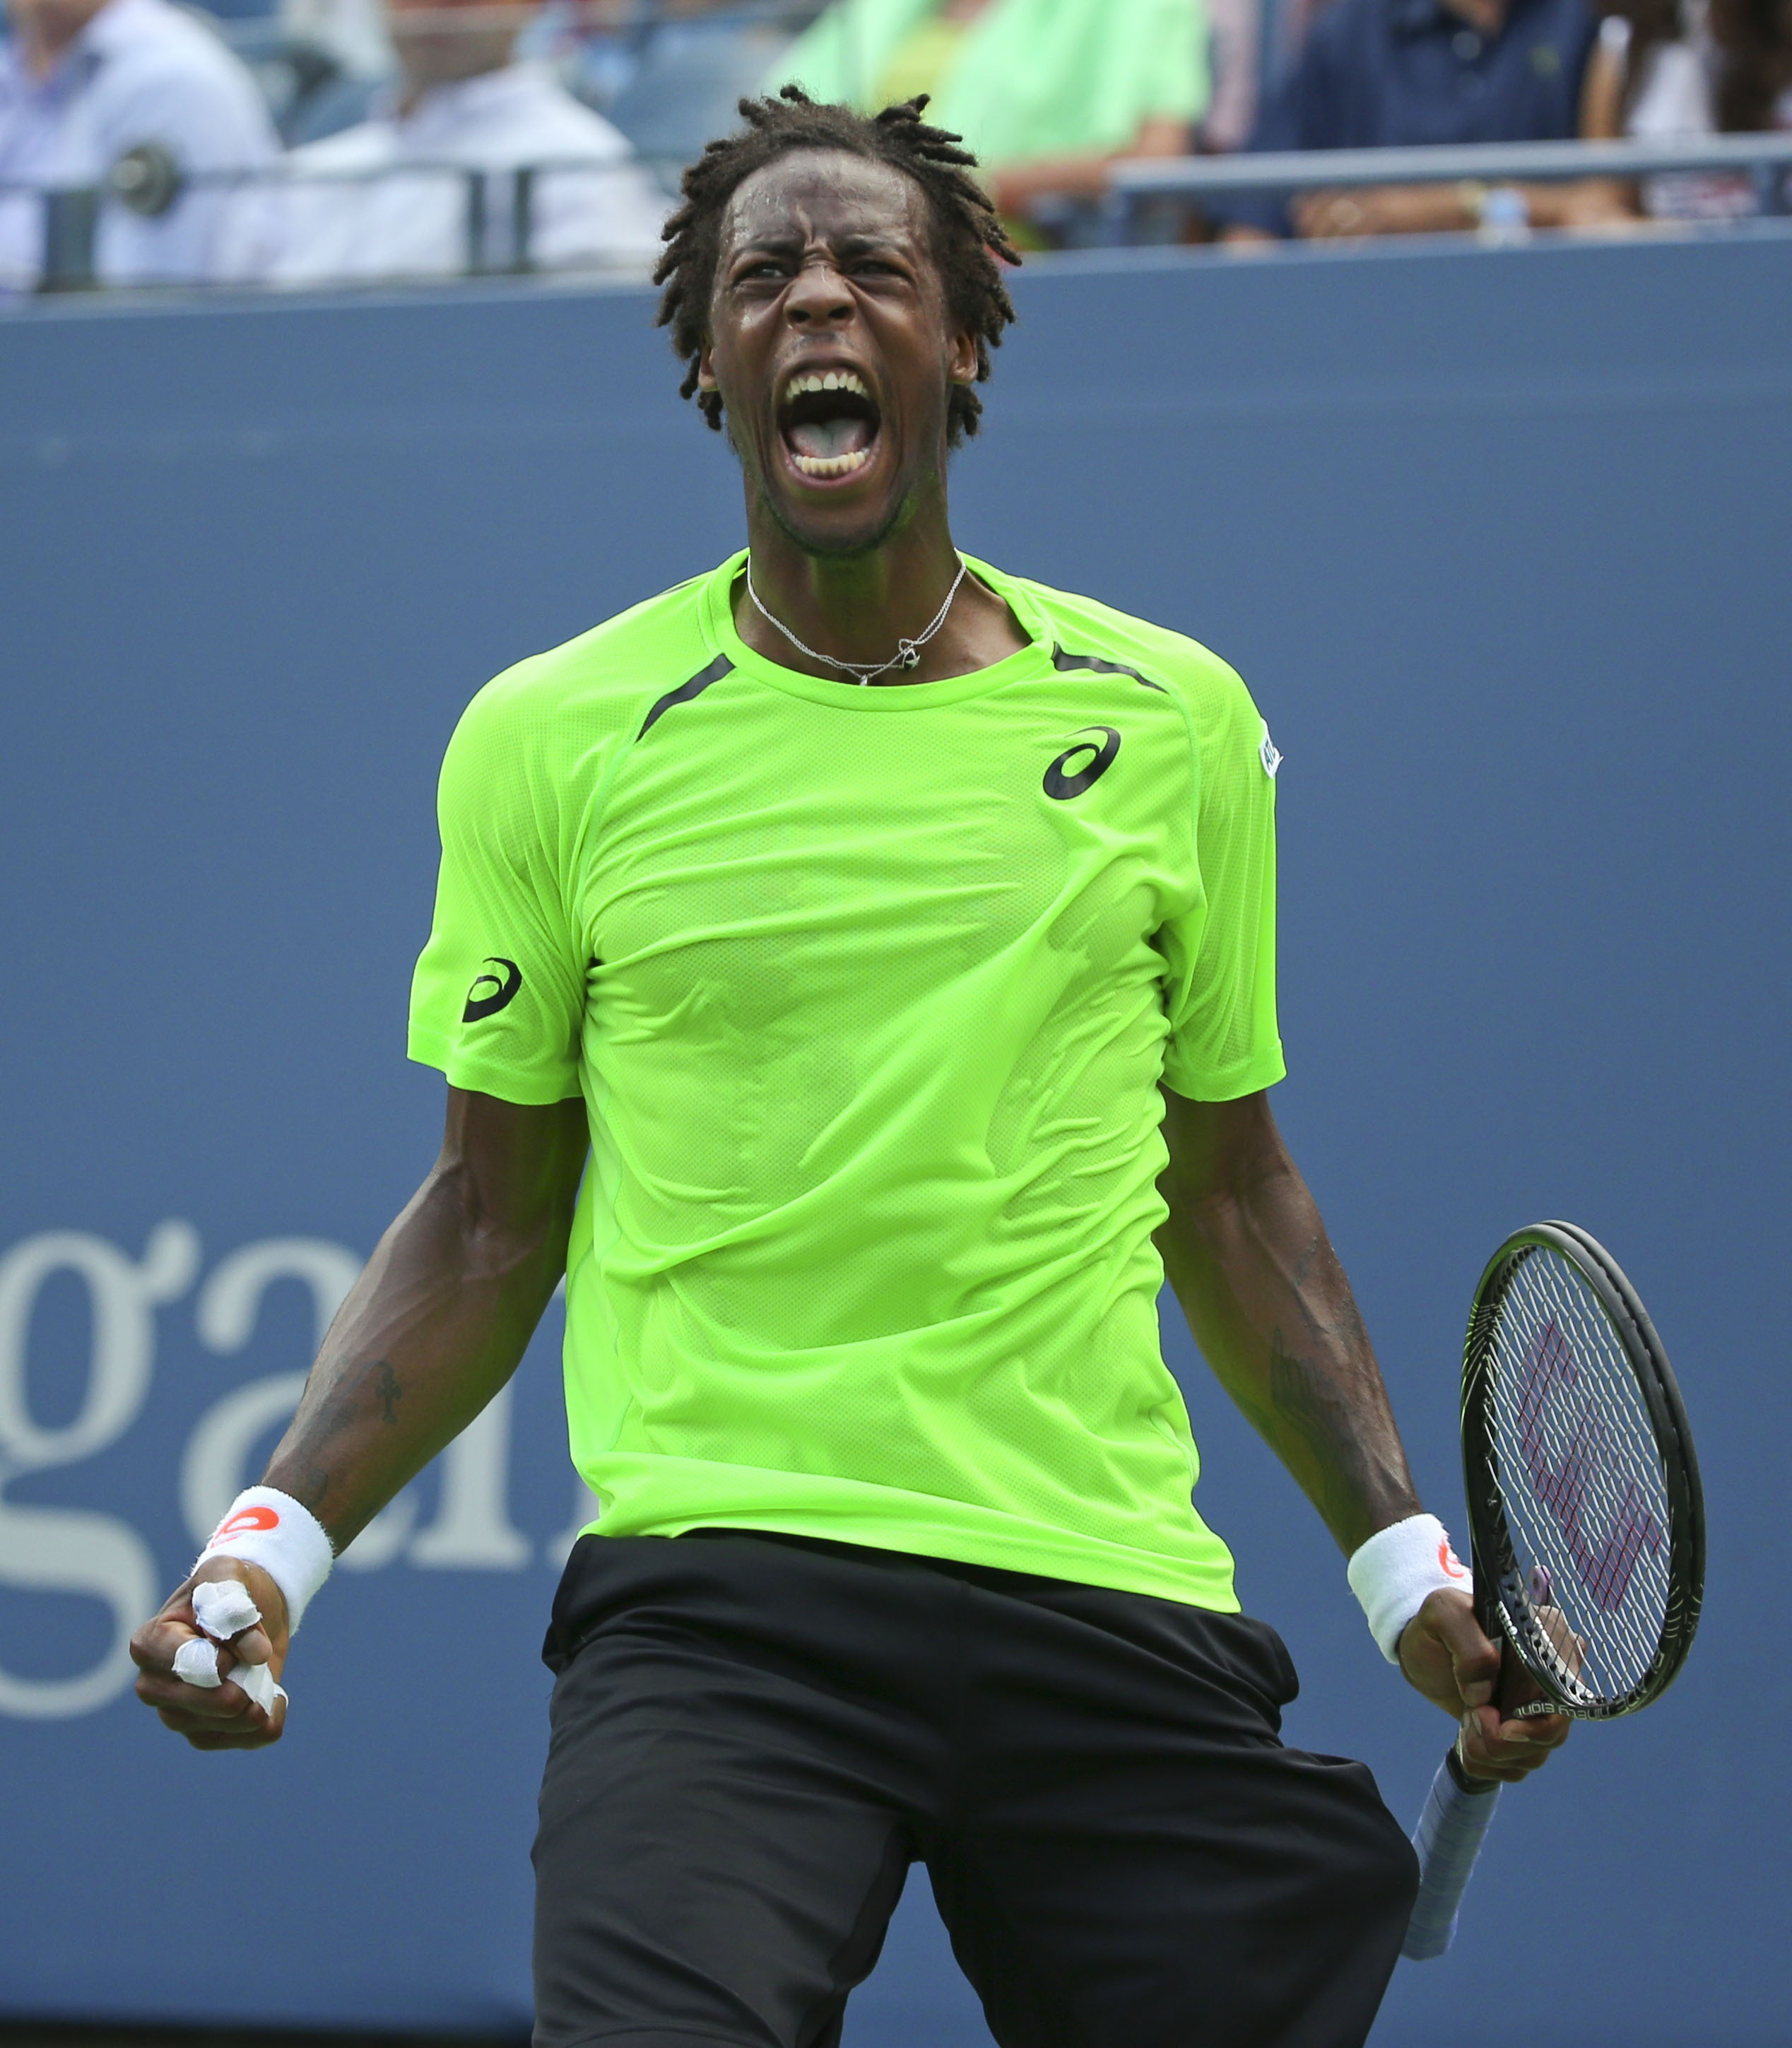 Gael Monfils Dive on a Roll Gael Monfils Reacts